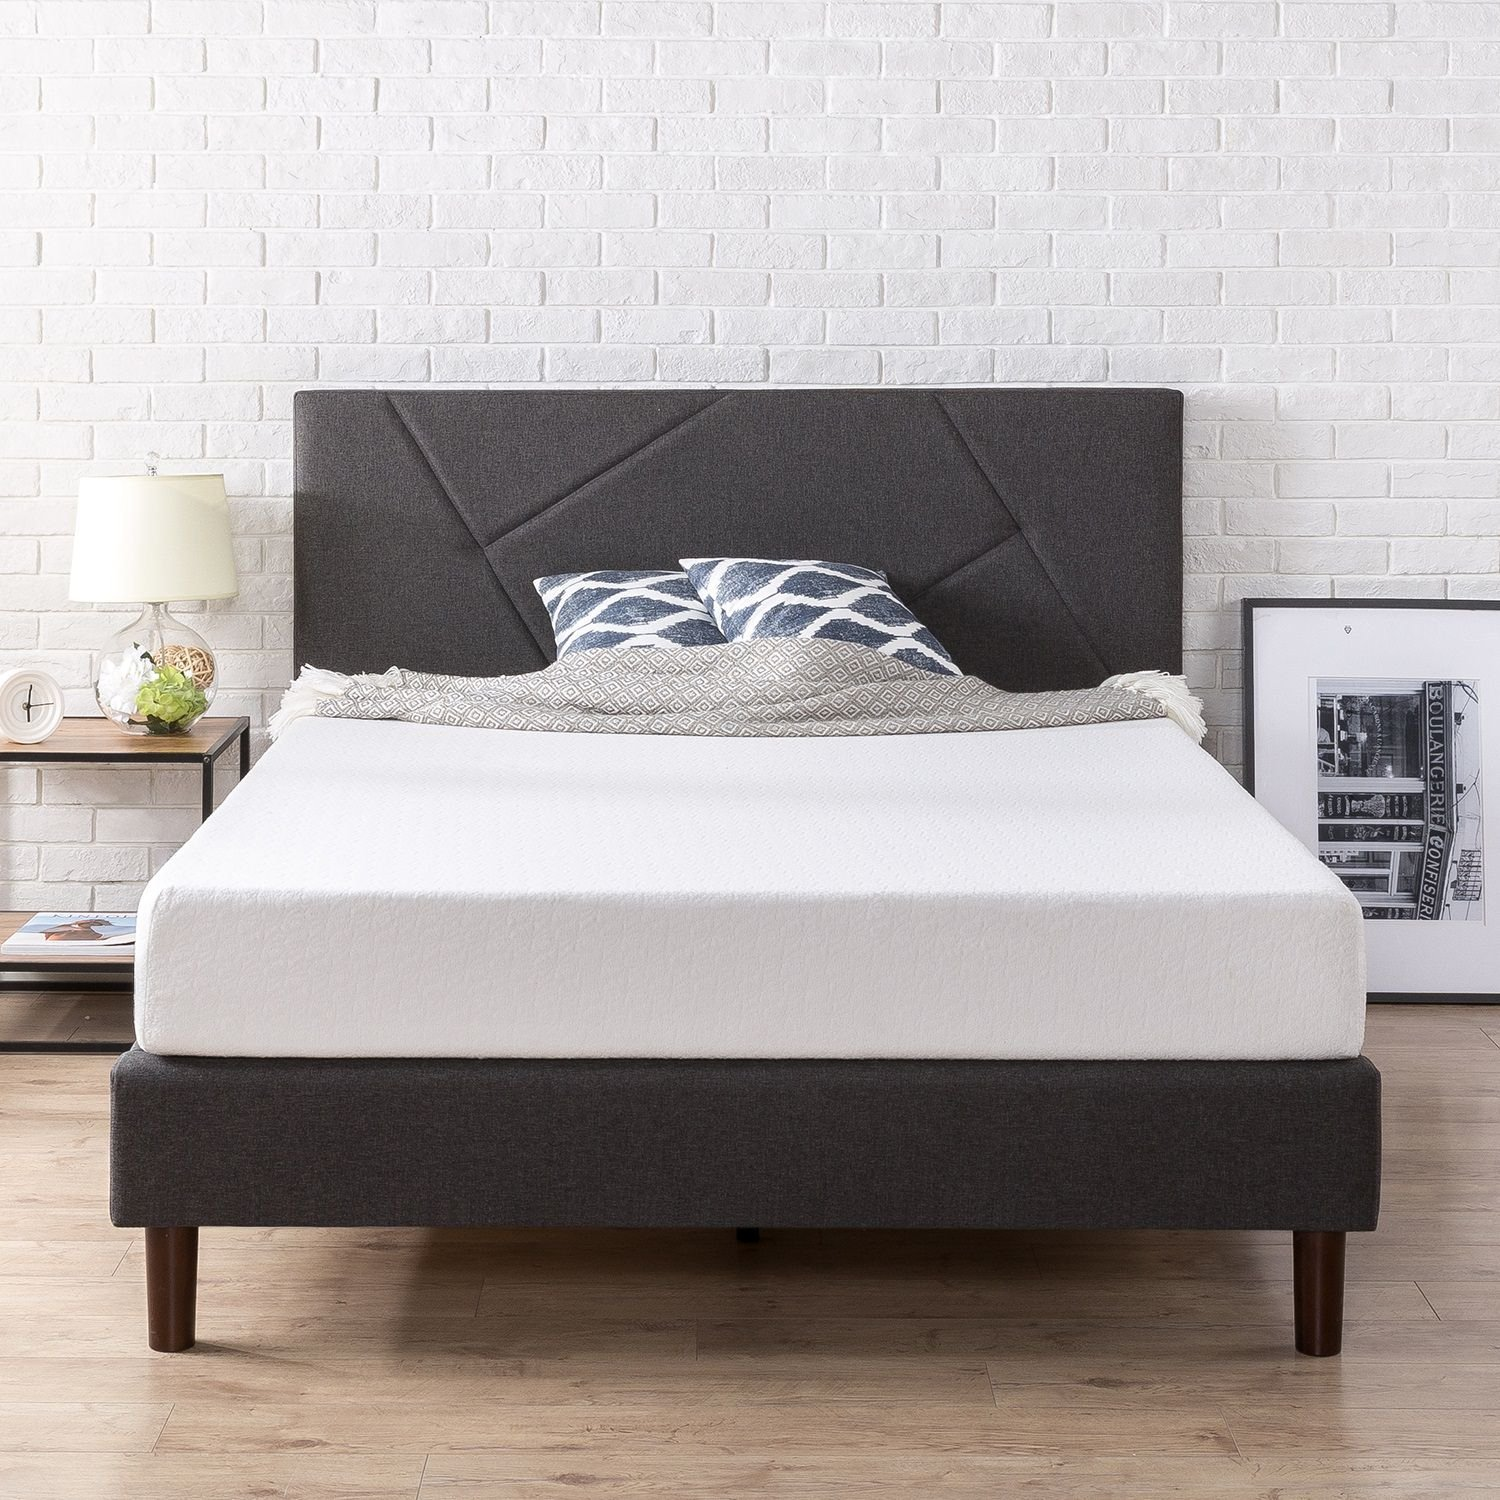 Zinus Upholstered Geometric Paneled Platform Bed / Mattress Foundation / Easy Assembly / Strong Wood Slat Support, Queen